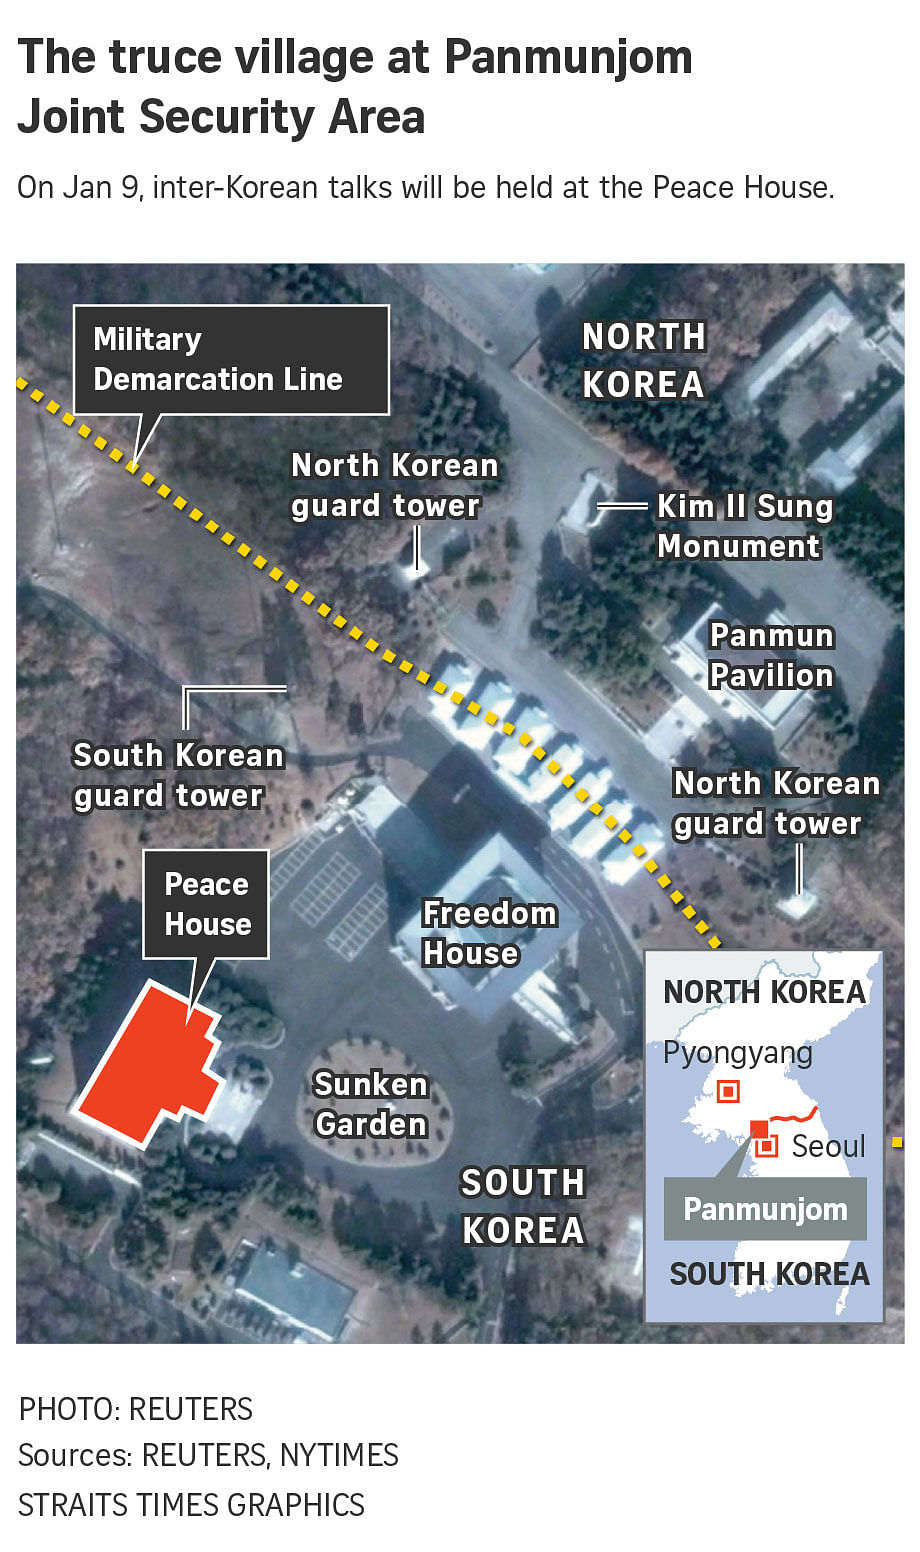 7 things to know about Panmunjom, the truce village where